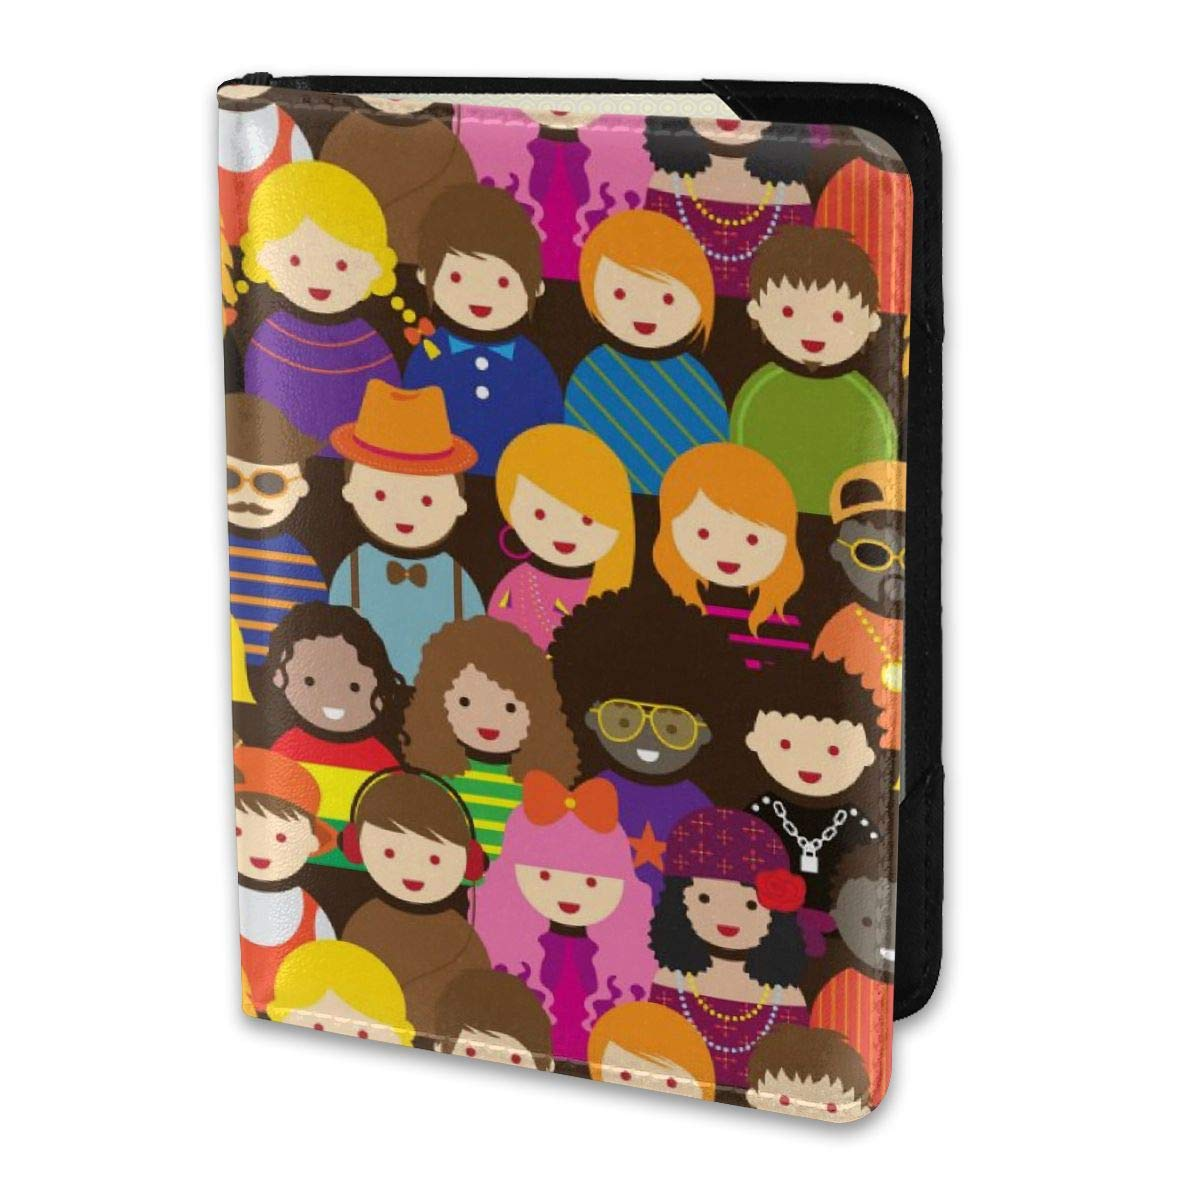 Biahos Leather Passport Cover Various Teenage People Pattern Wallet For Passport Case